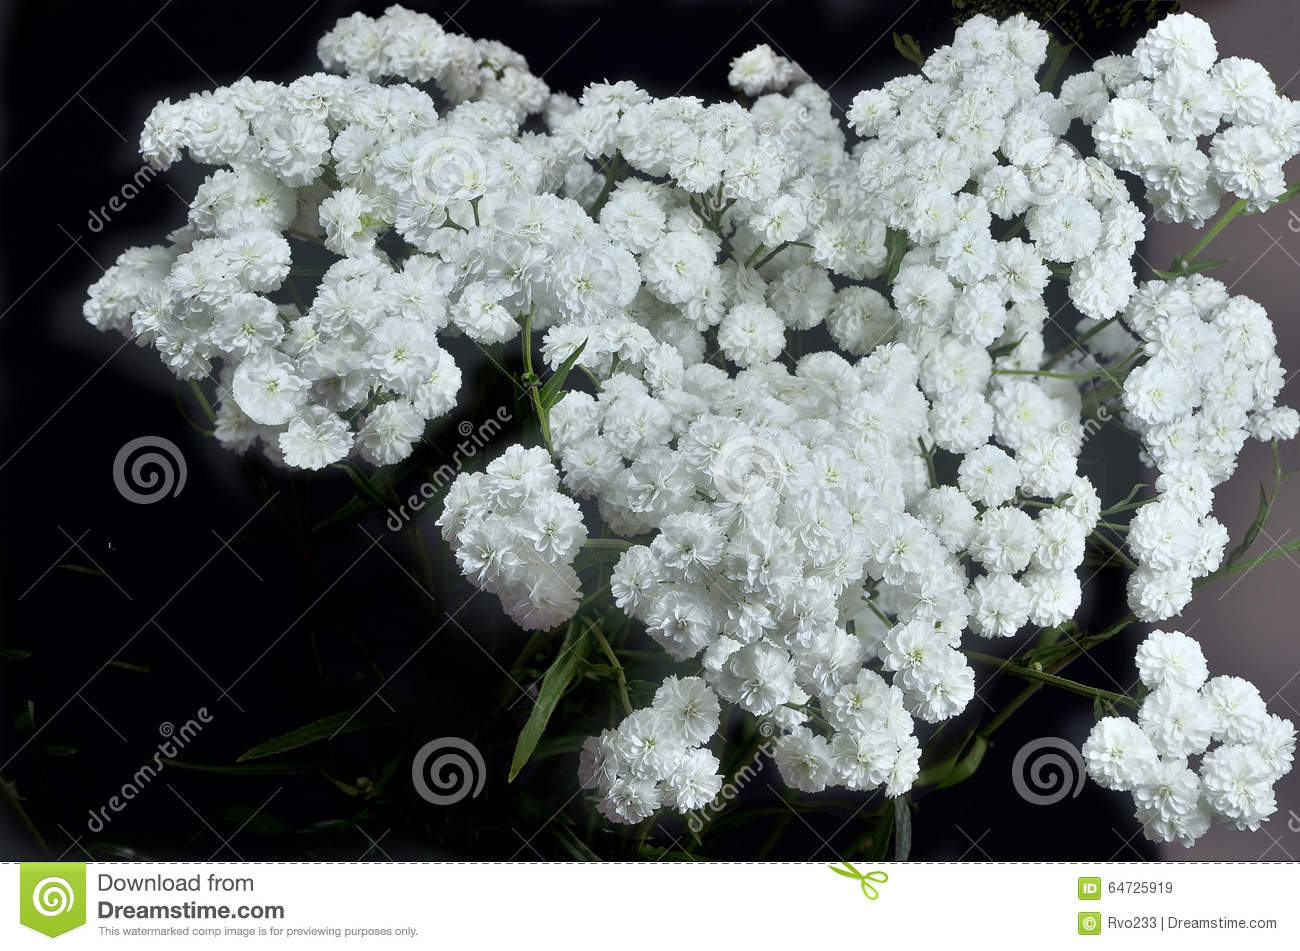 Small fluffy white flowers stock image image of love 64725919 small fluffy white flowers mightylinksfo